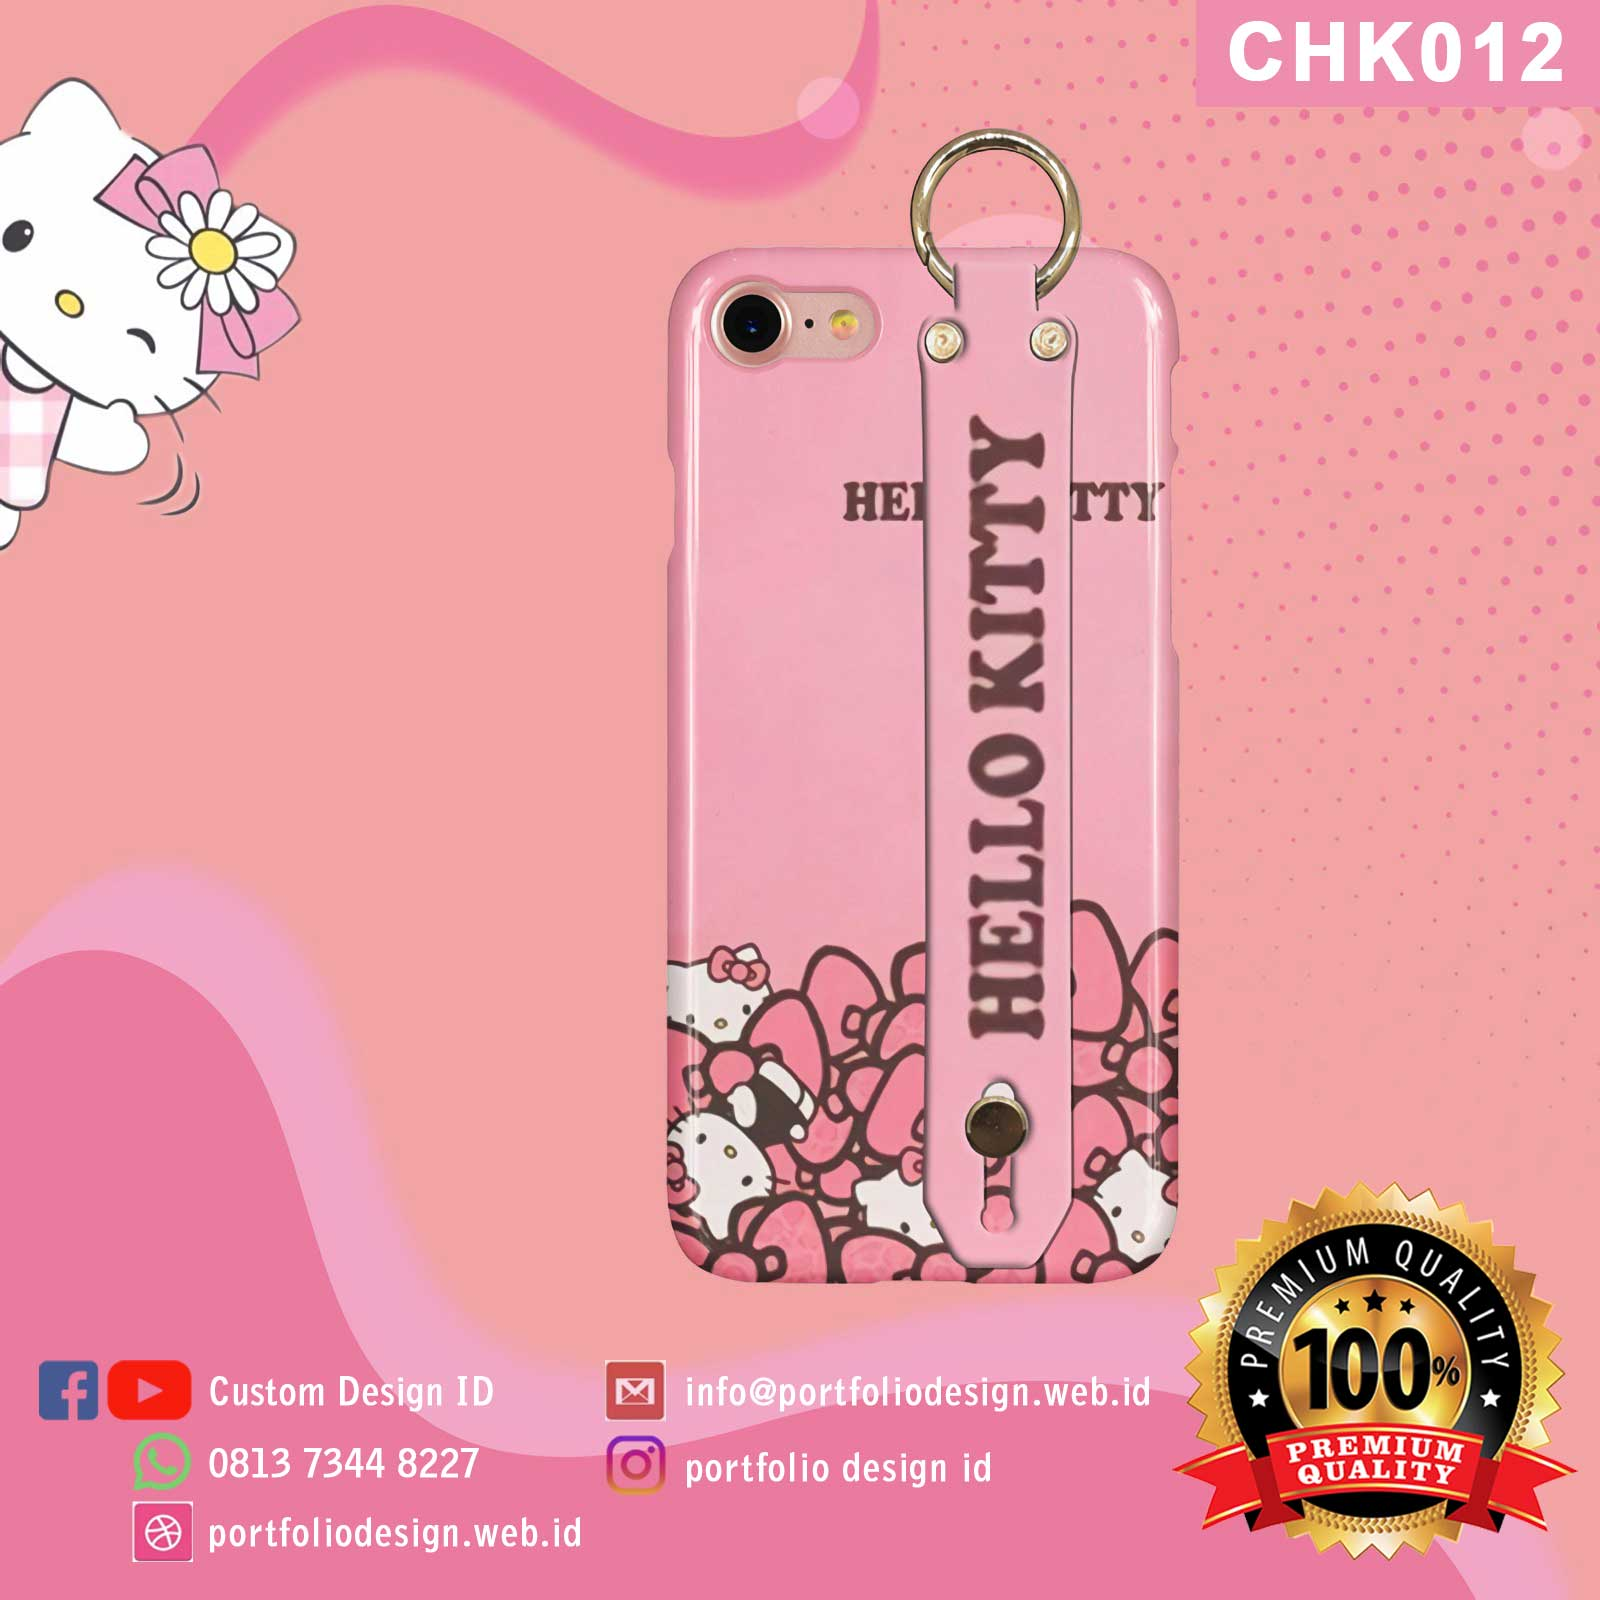 Casing handphone karakter Hello Kitty CHK012